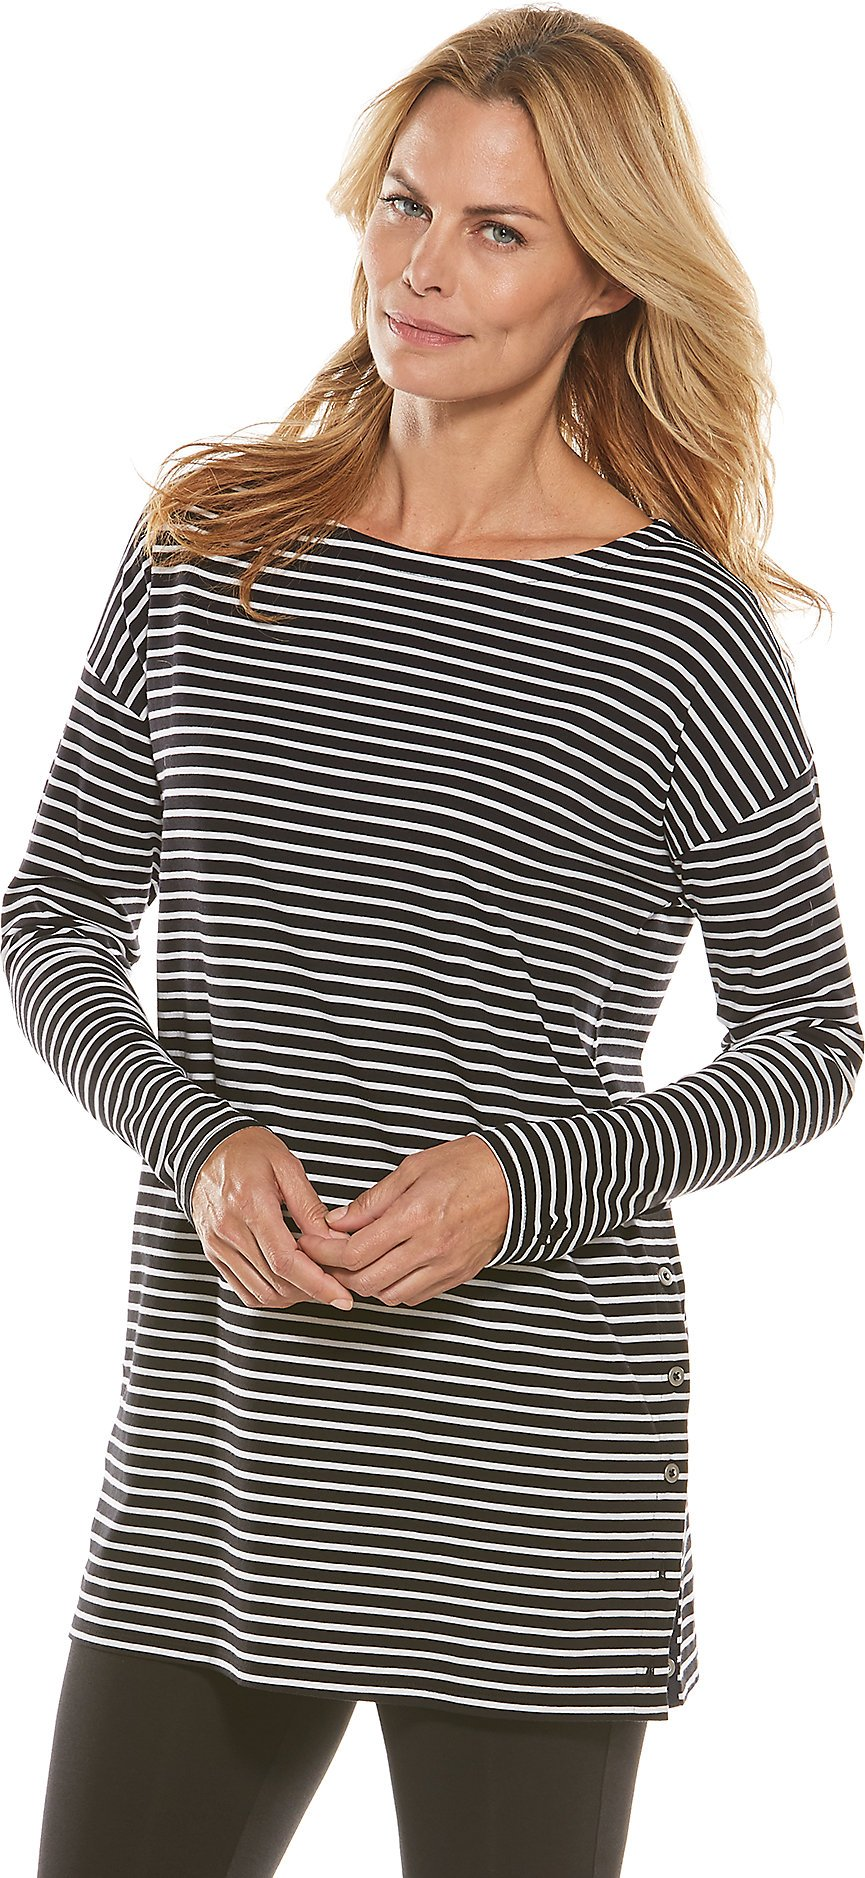 Coolibar UPF 50+ Women's Side Button Tunic Top - Sun Protective (Large- Black/White Stripe)